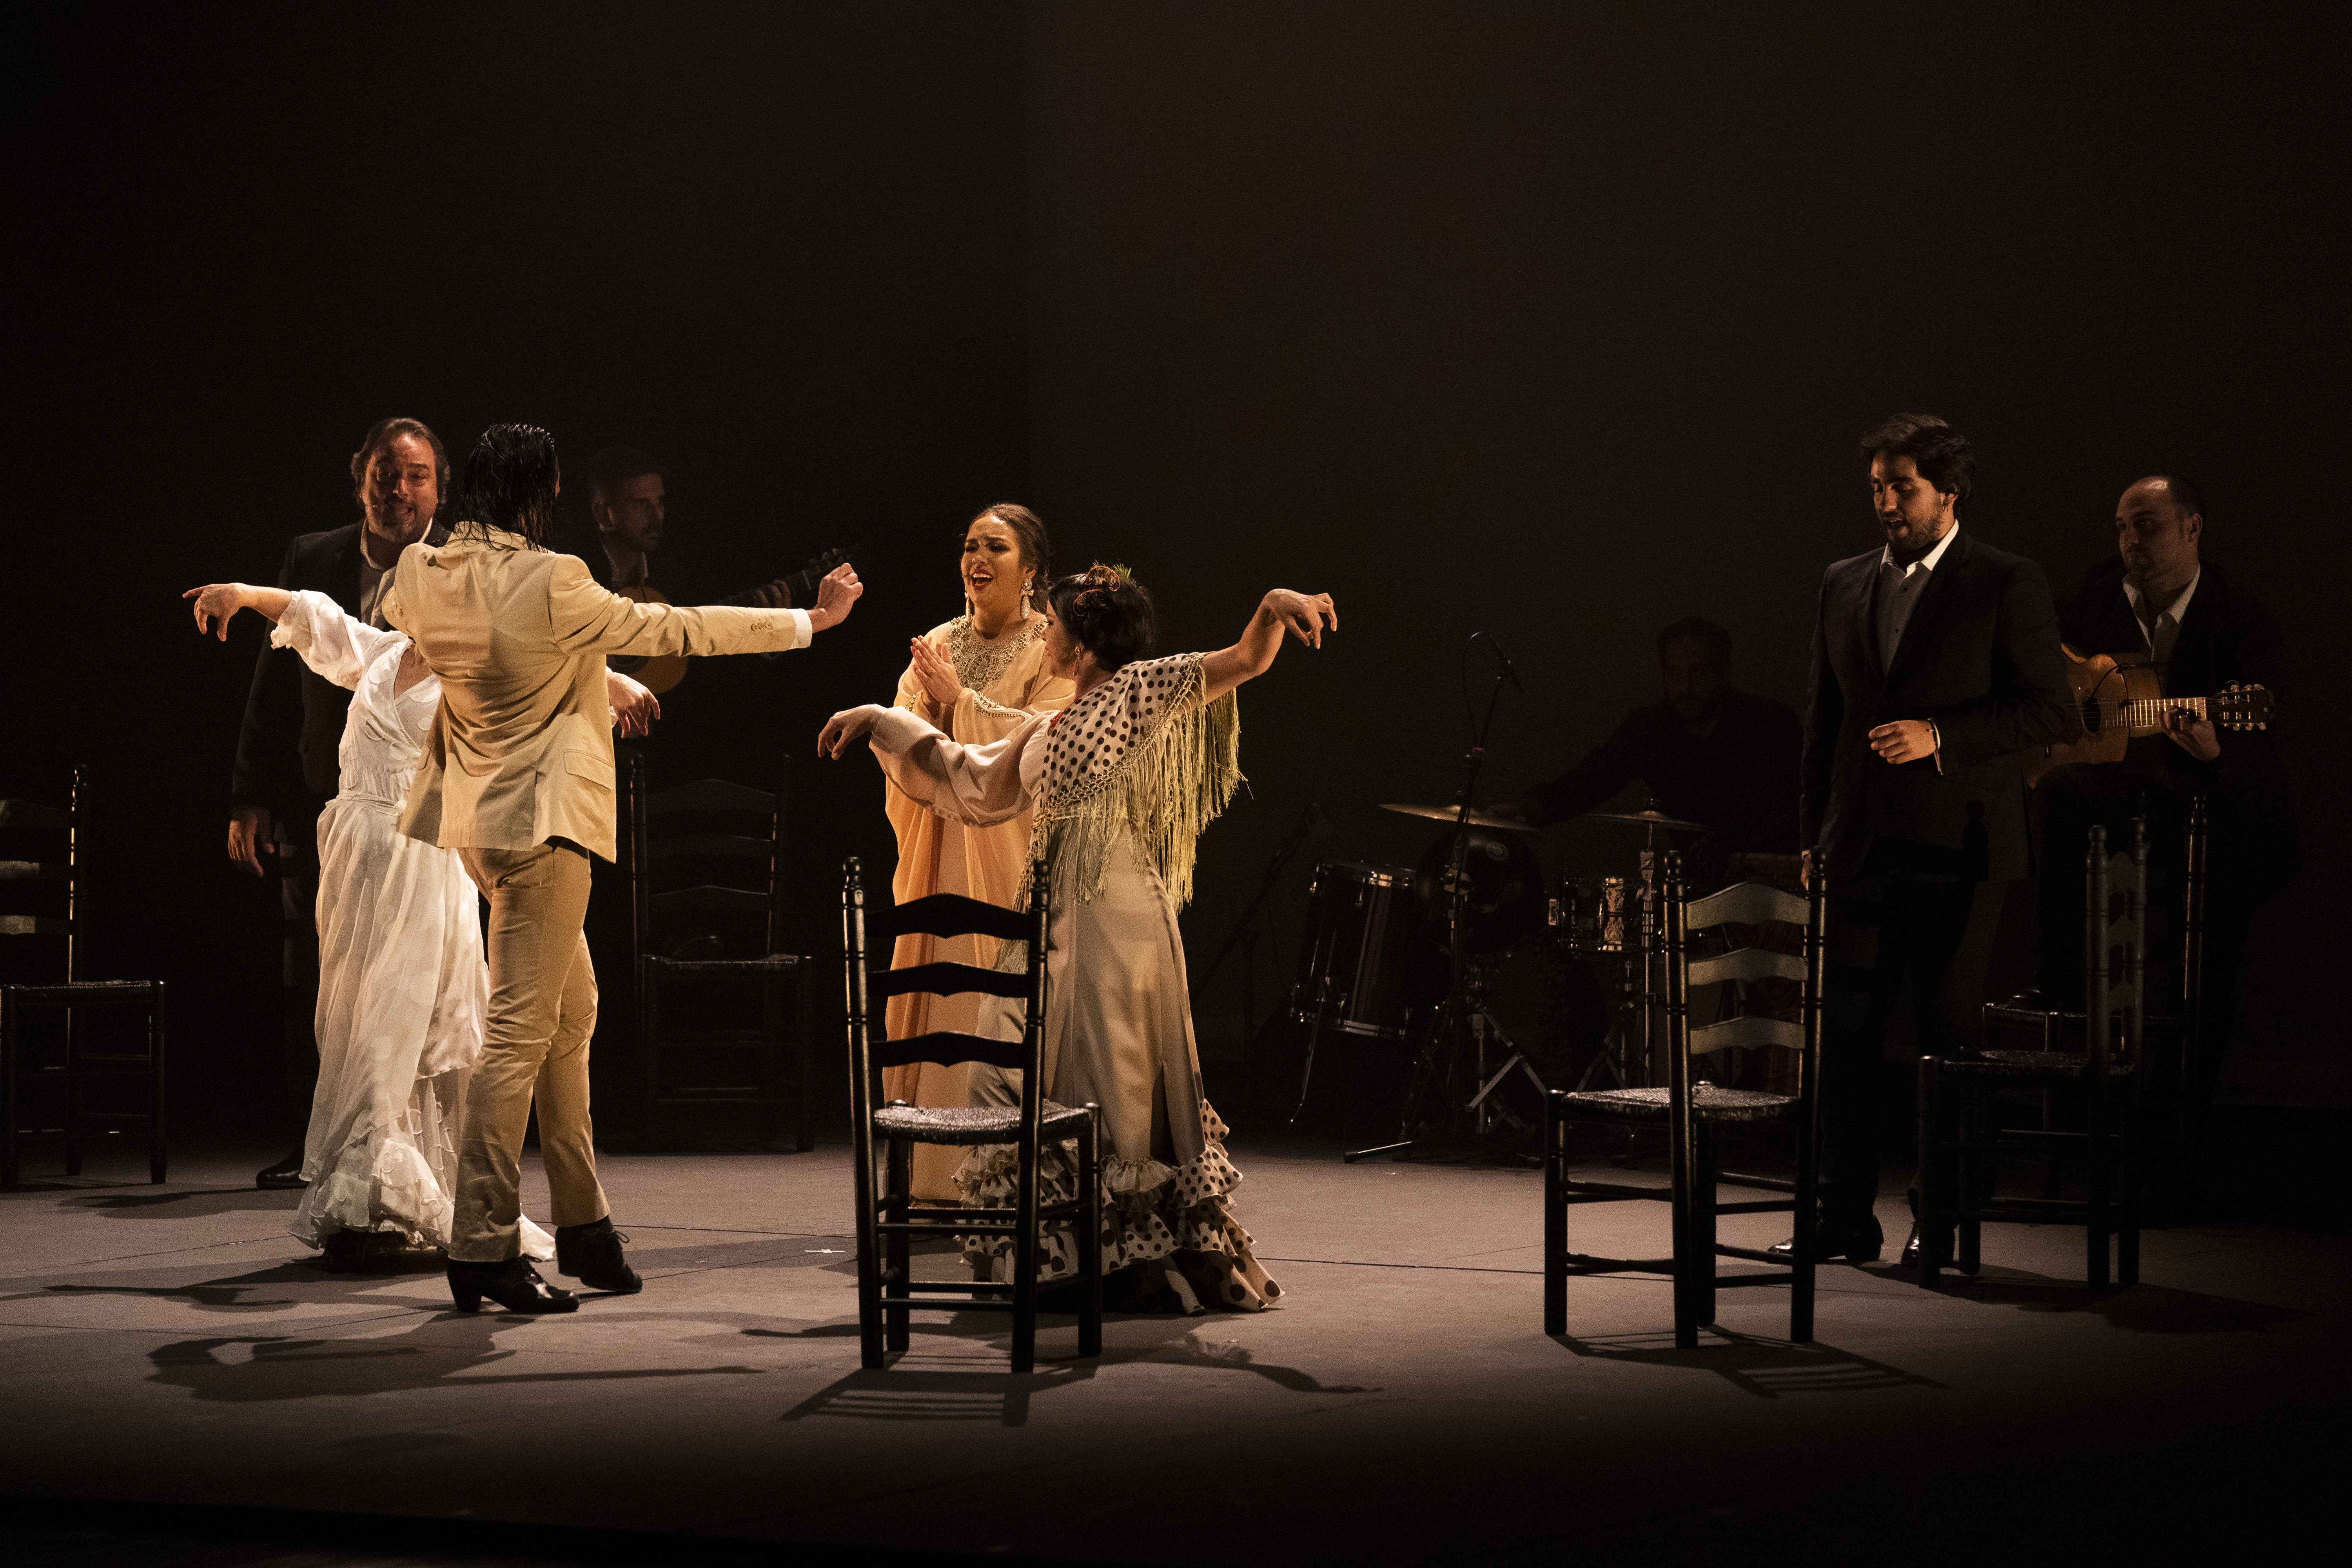 Dancers and musicians perform at the Gala Flamenca show at Sadler Wells